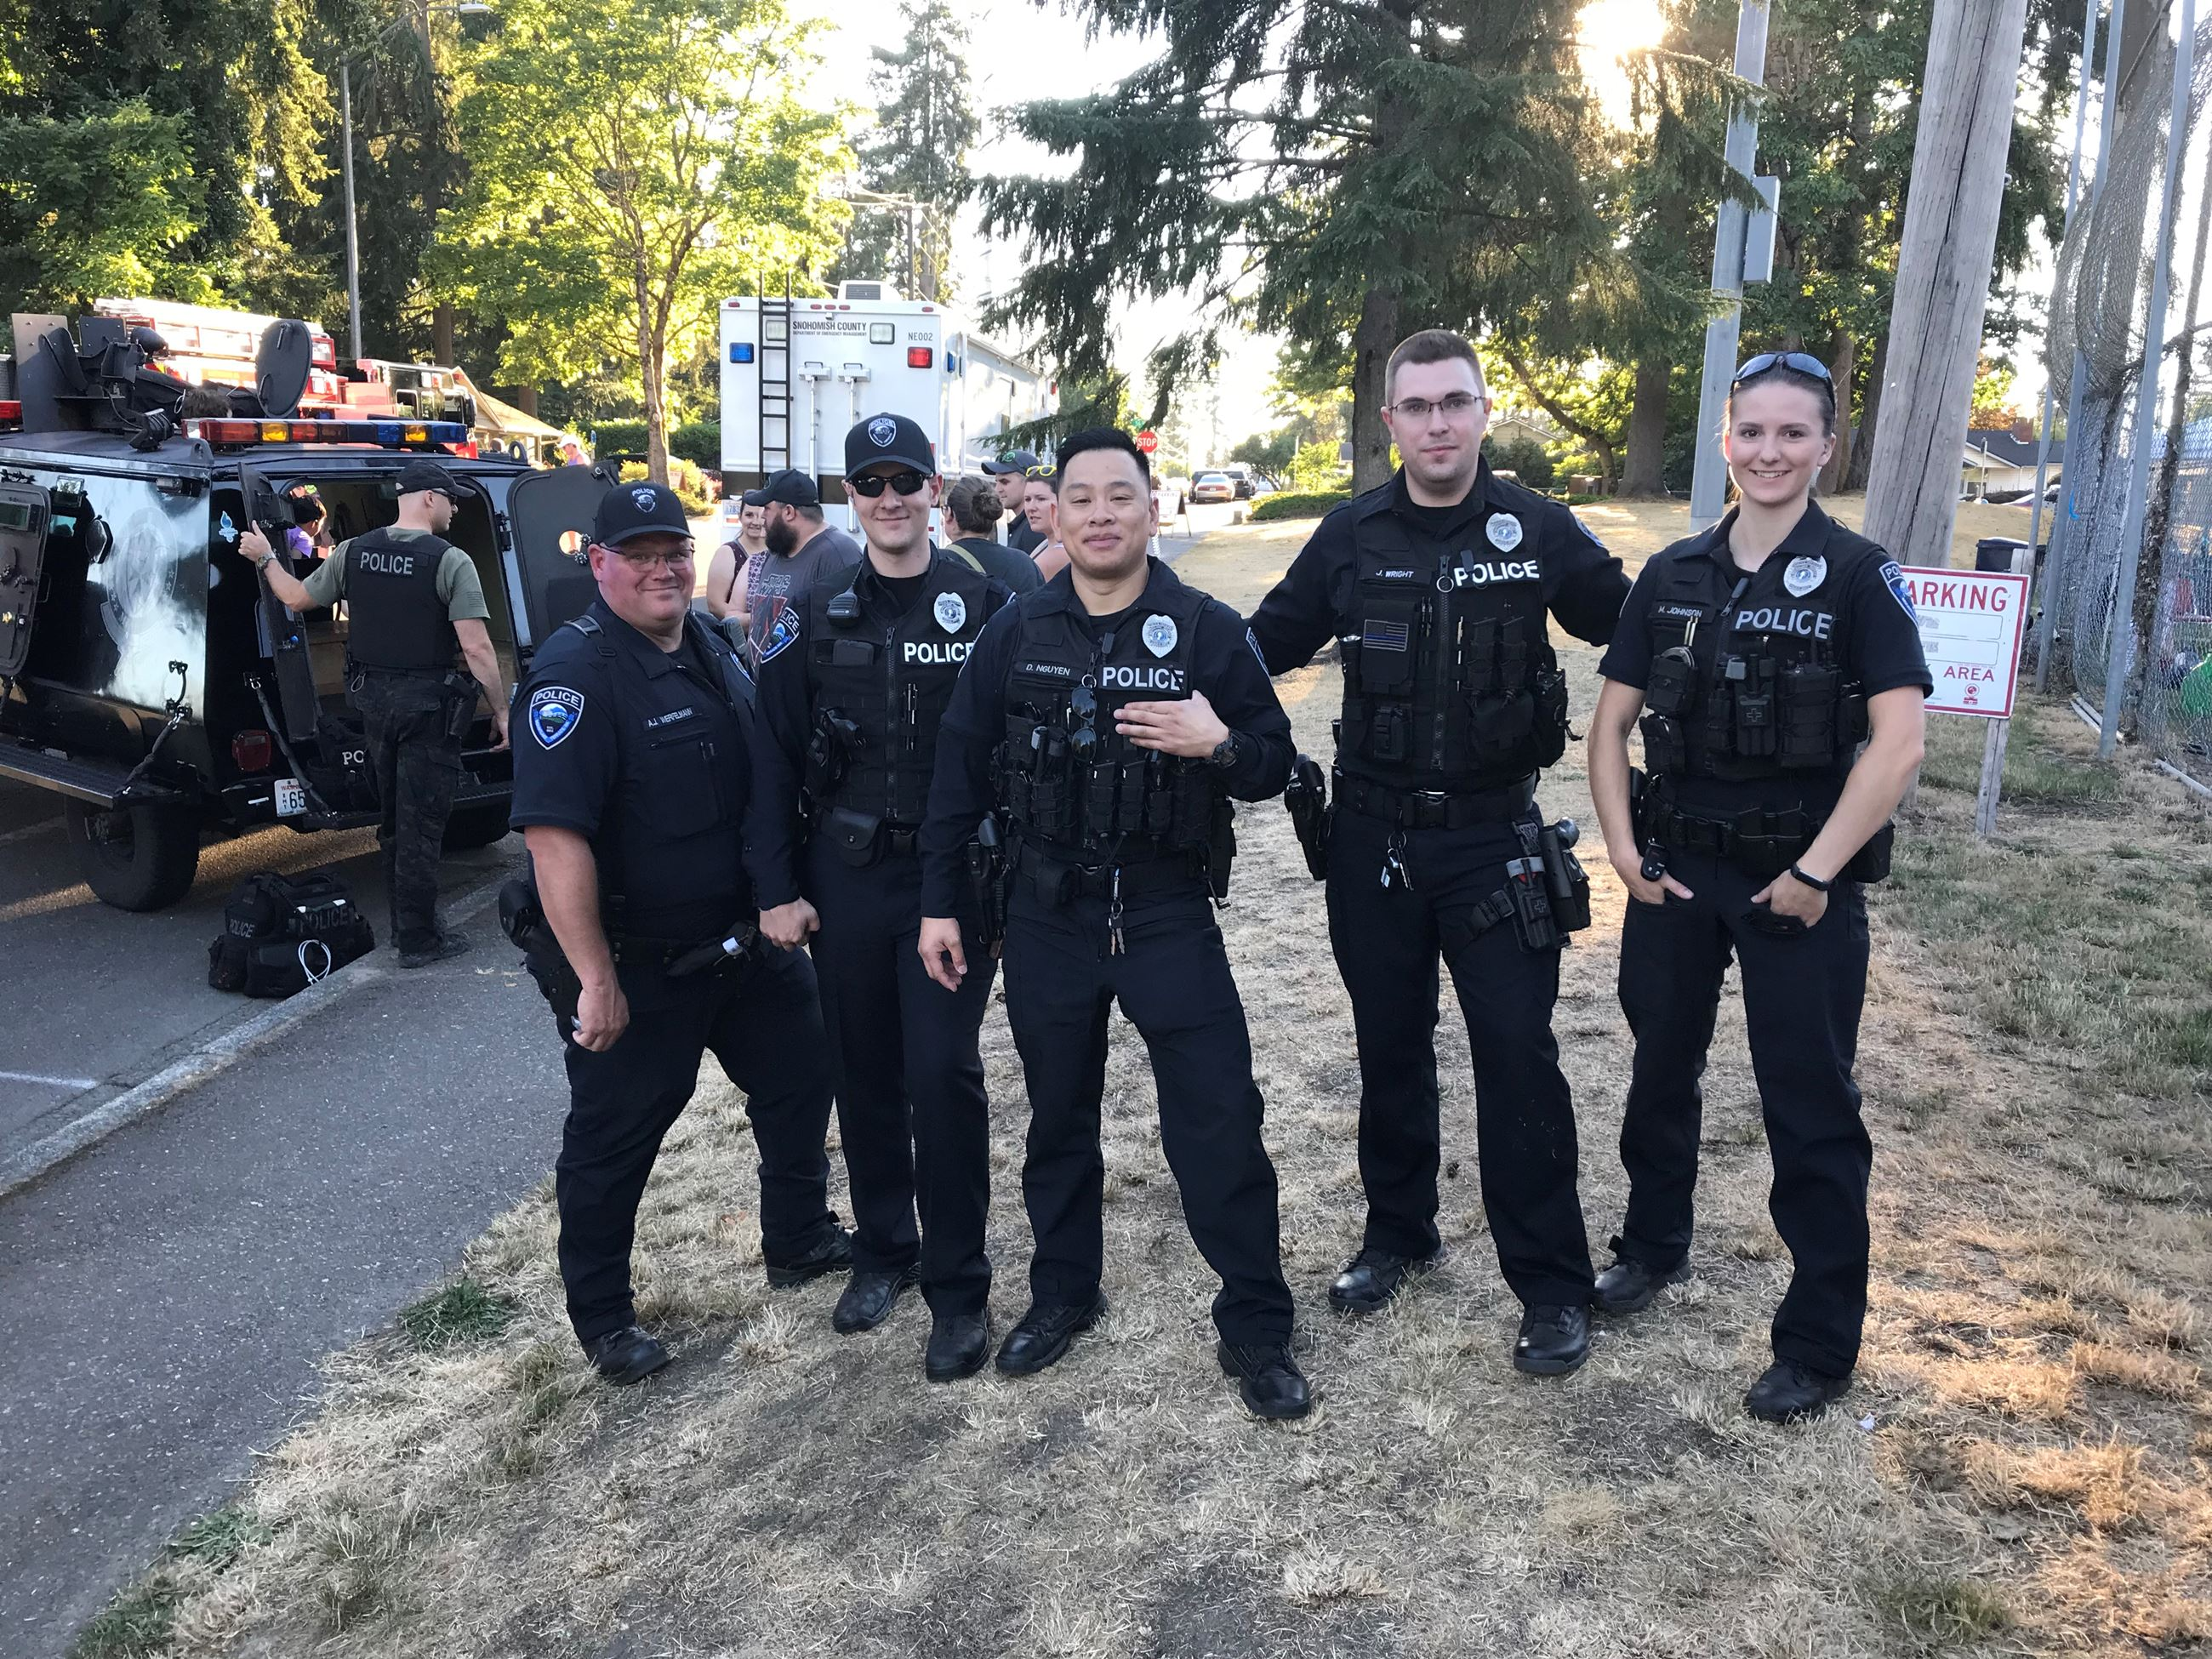 Police at community event_2019